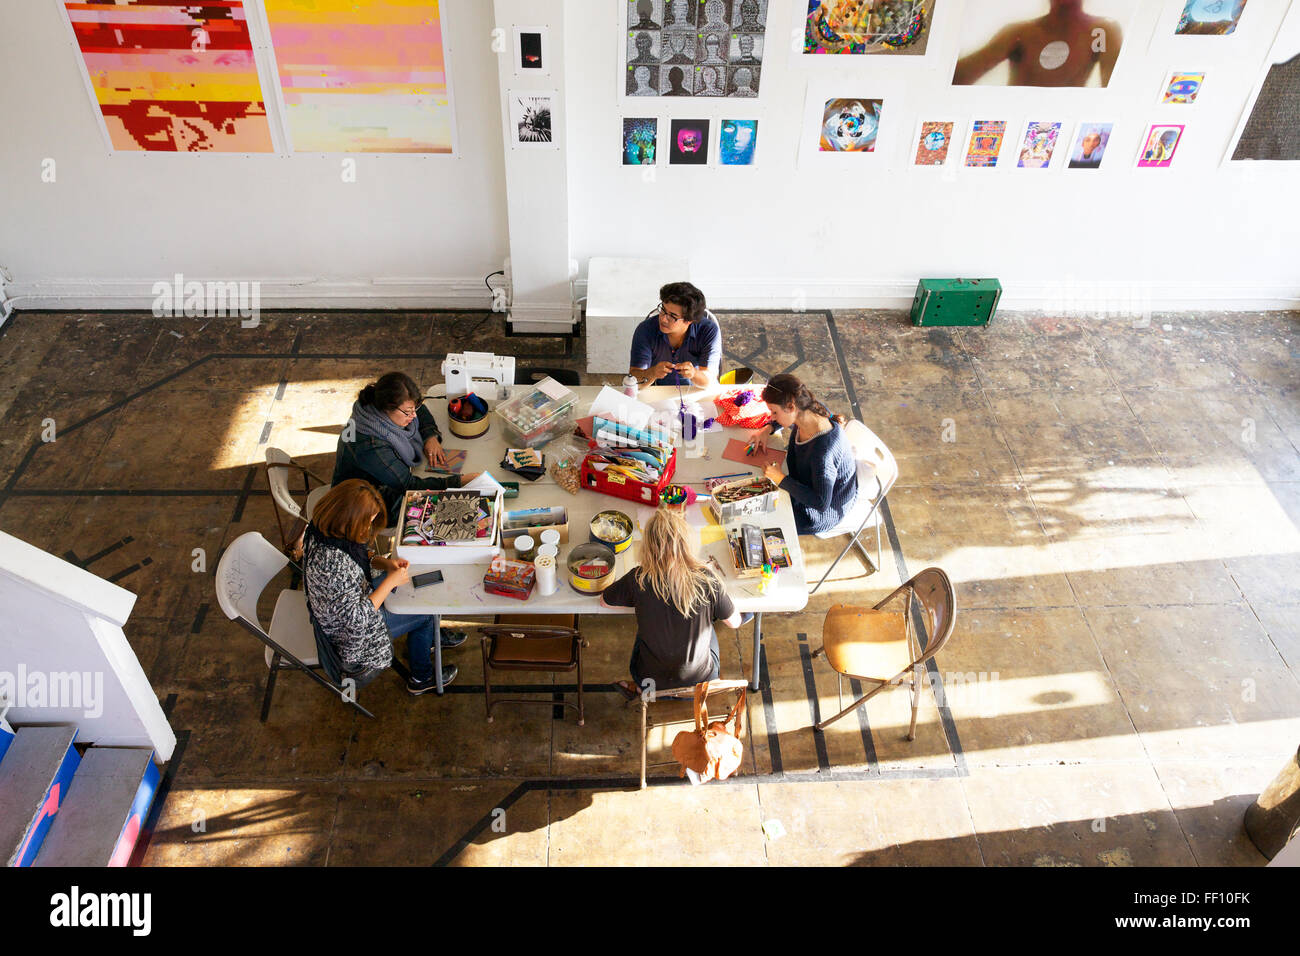 Five people sitting around a table with crafting supplies in a bright sunny space, each working on his or her project - Stock Image